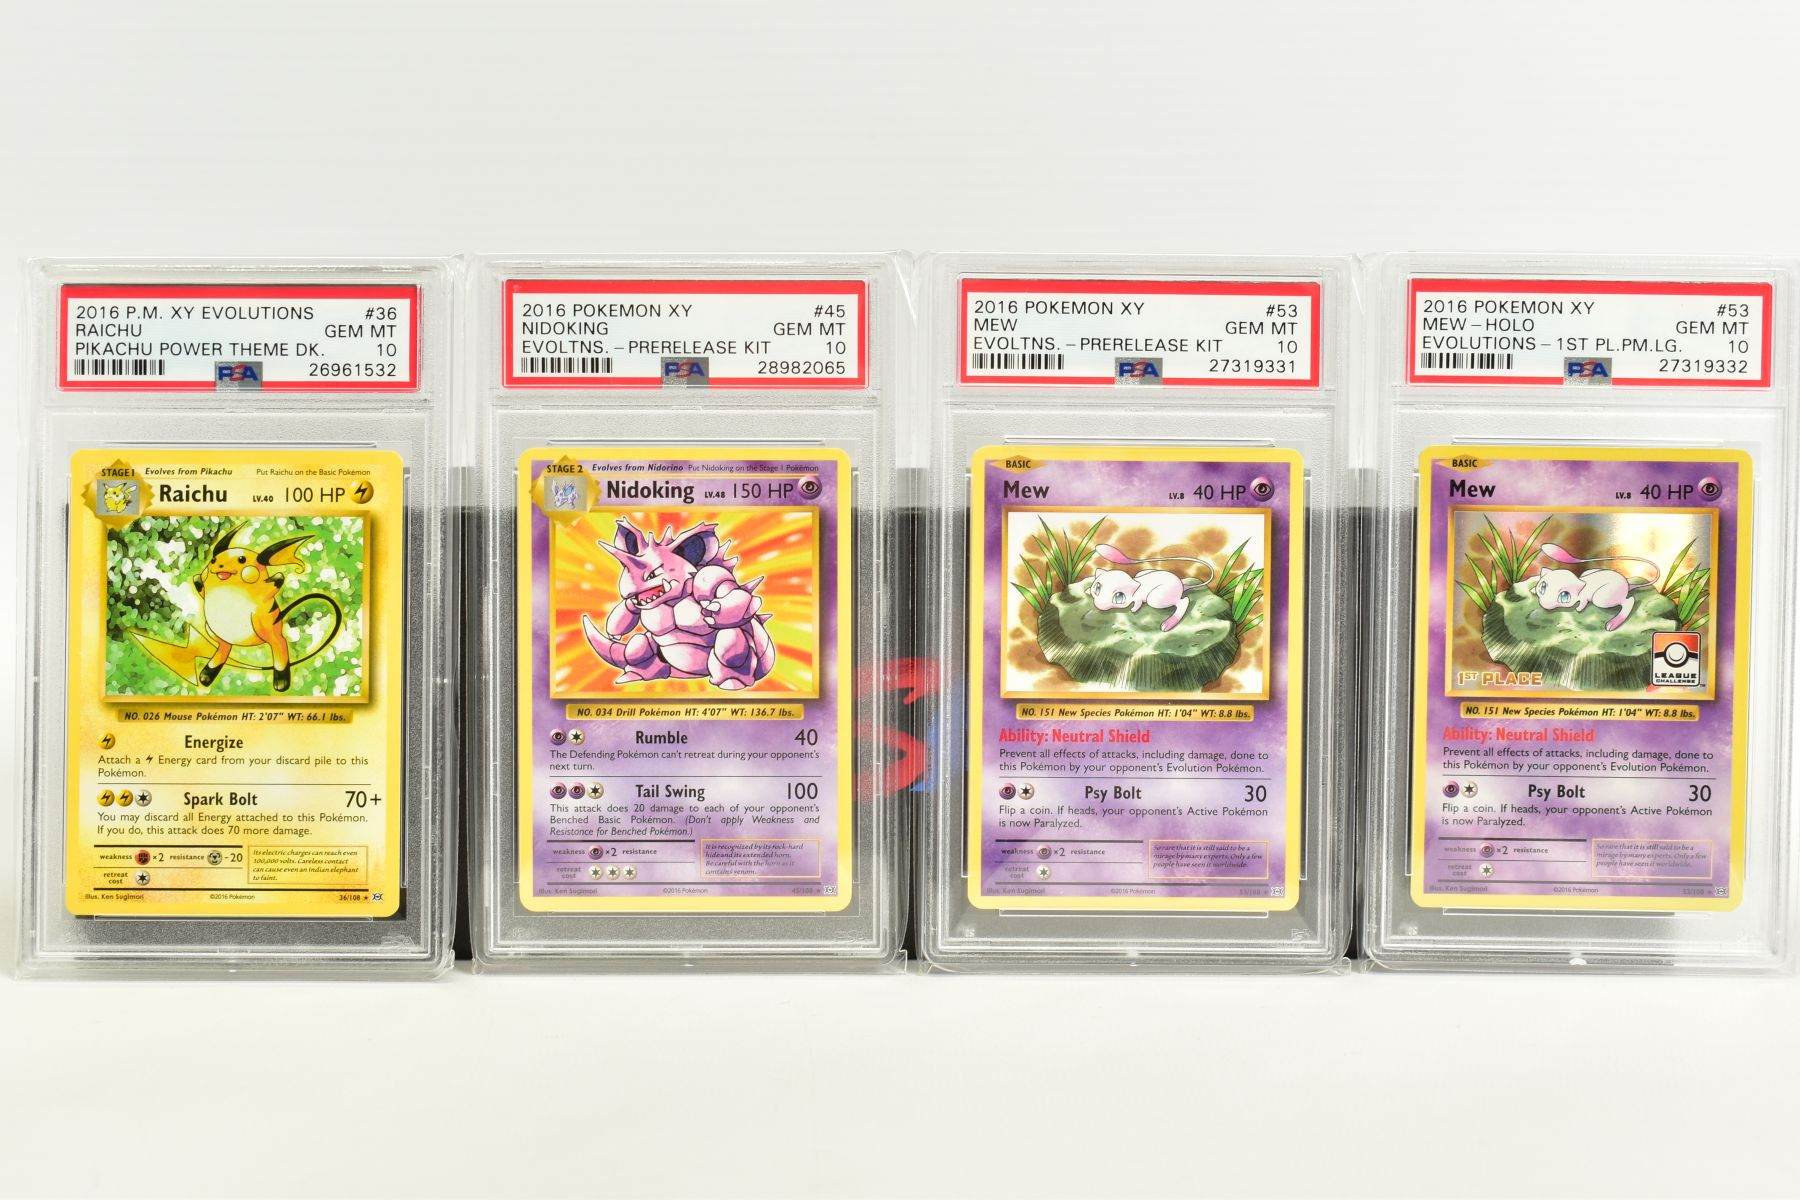 A QUANTITY OF PSA GRADED POKEMON XY EVOLUTIONS SET CARDS, all are graded GEM MINT 10 and are - Image 9 of 10